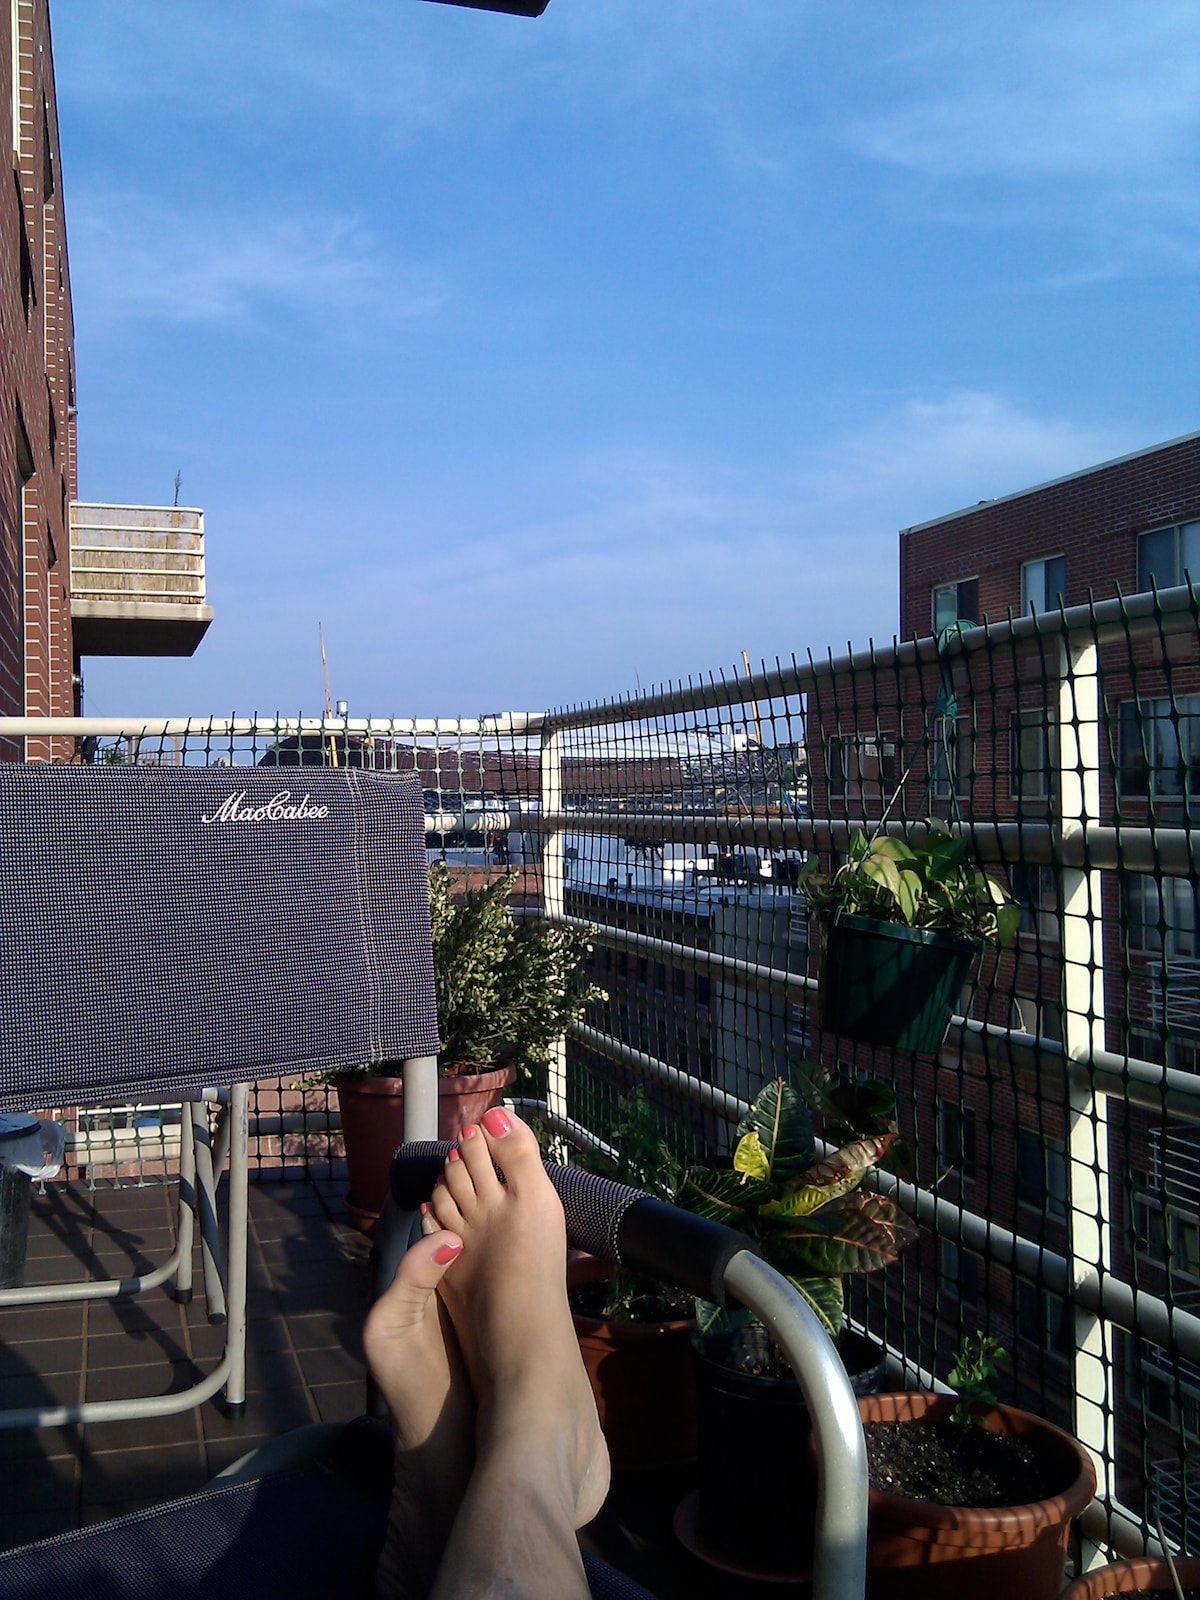 Just chilling, getting some sun, with my feet up on our balcony. Barclays Center is right ahead there. Life. Is. Good.